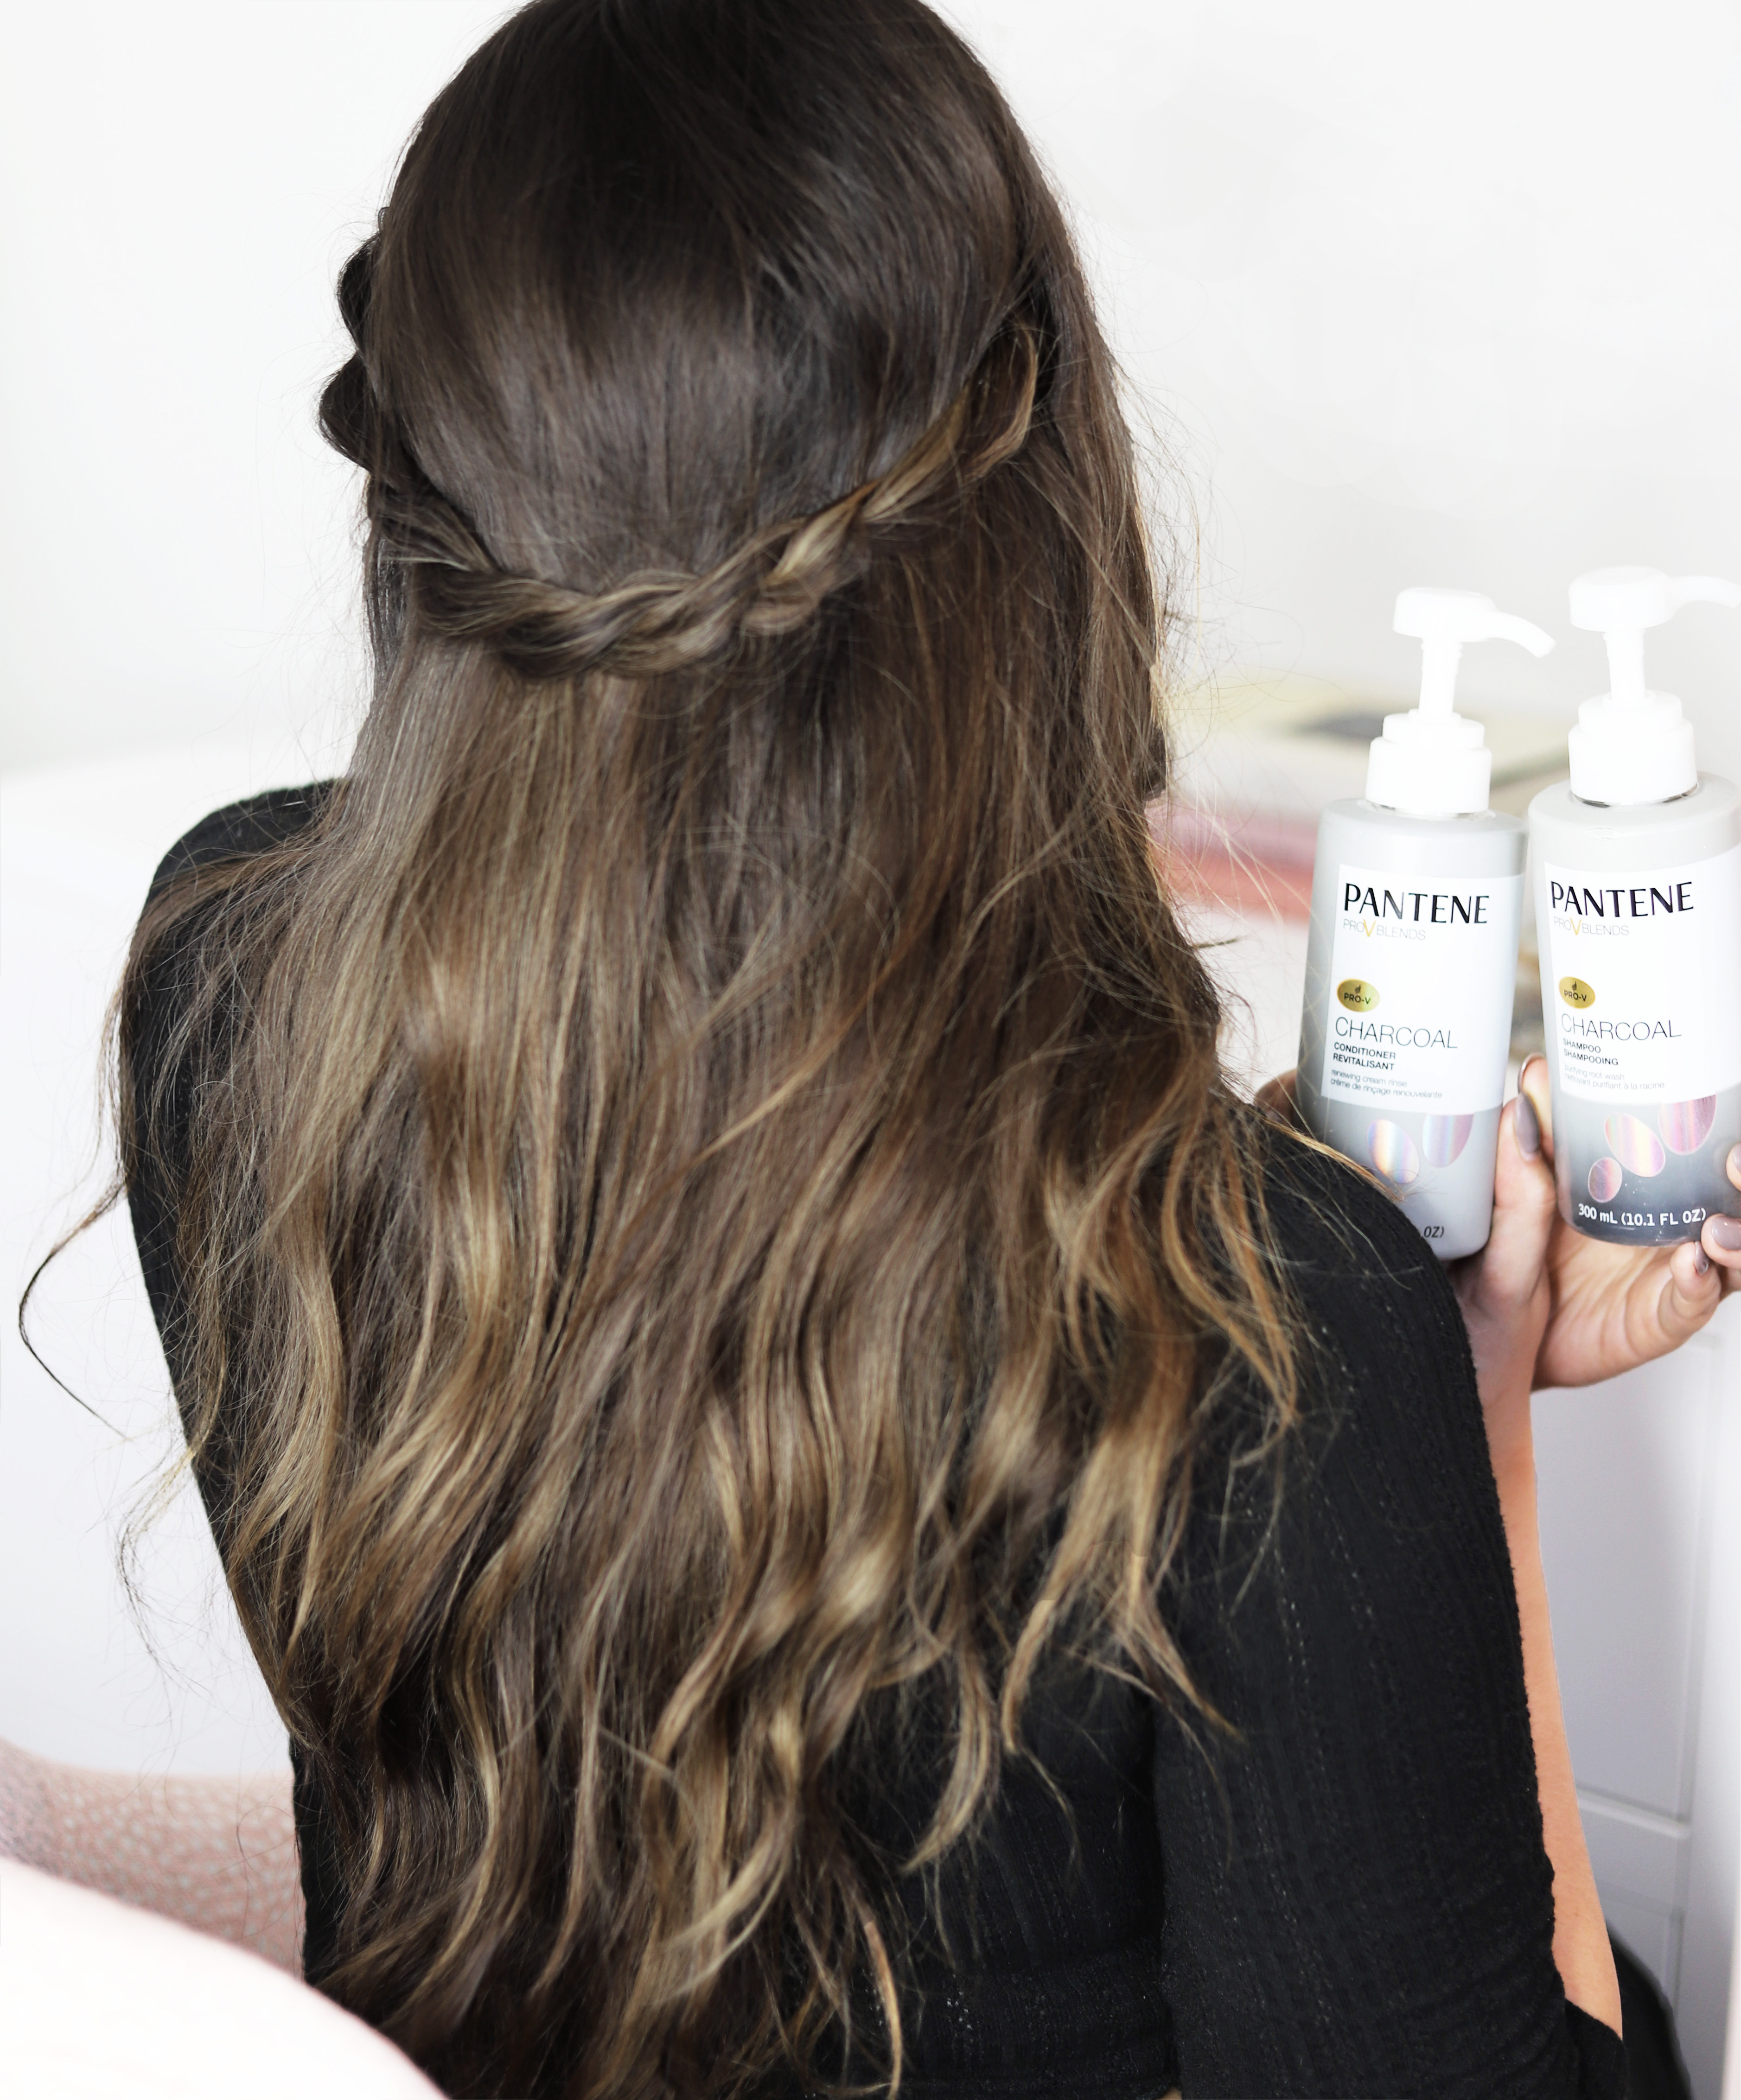 Mash elle beauty blogger | hairstyle | hair tutorial | braided hairstyle | Pantene | everyday hairstyle | long hair | fall hairstyles | hair inspiration